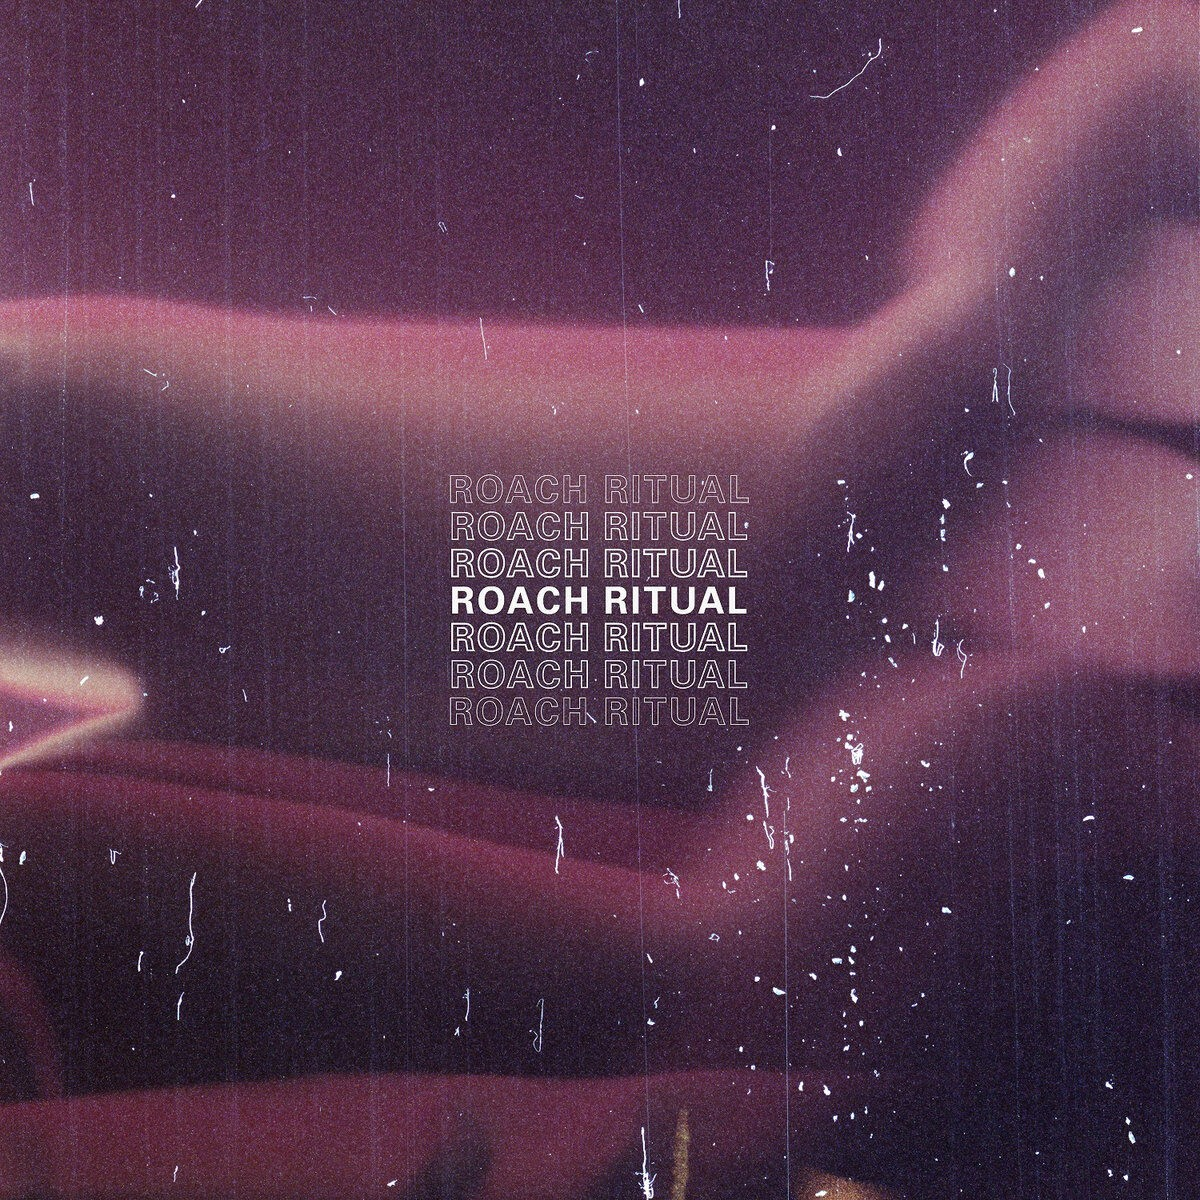 Joe Corfield - Roach Ritual - Radio Juicy